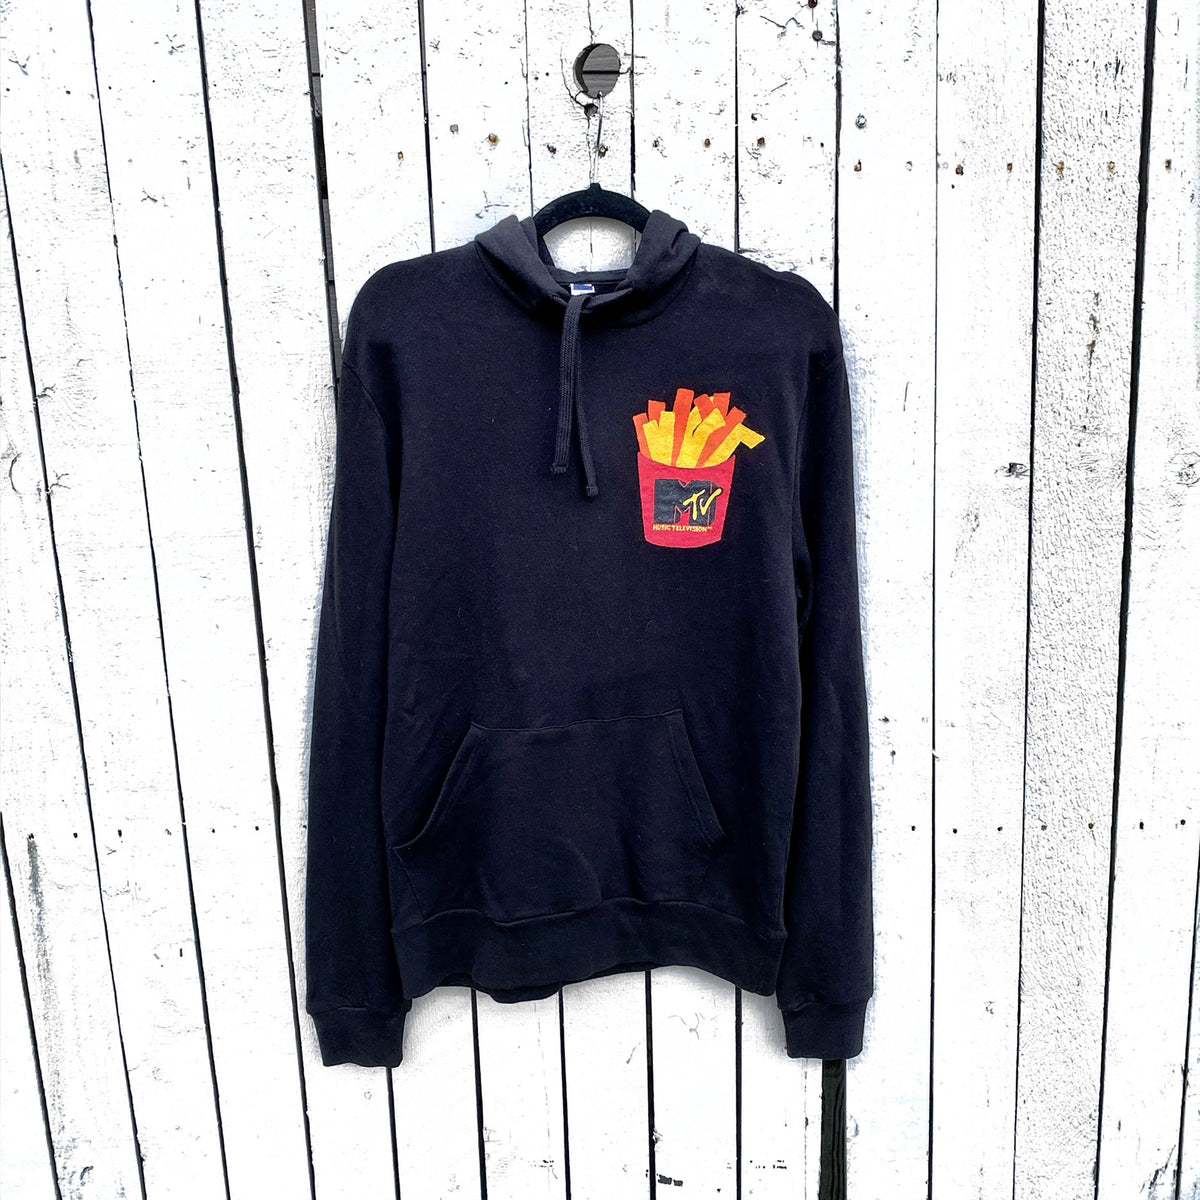 WG x MTV 'FRIES WITH THAT' HOODIE